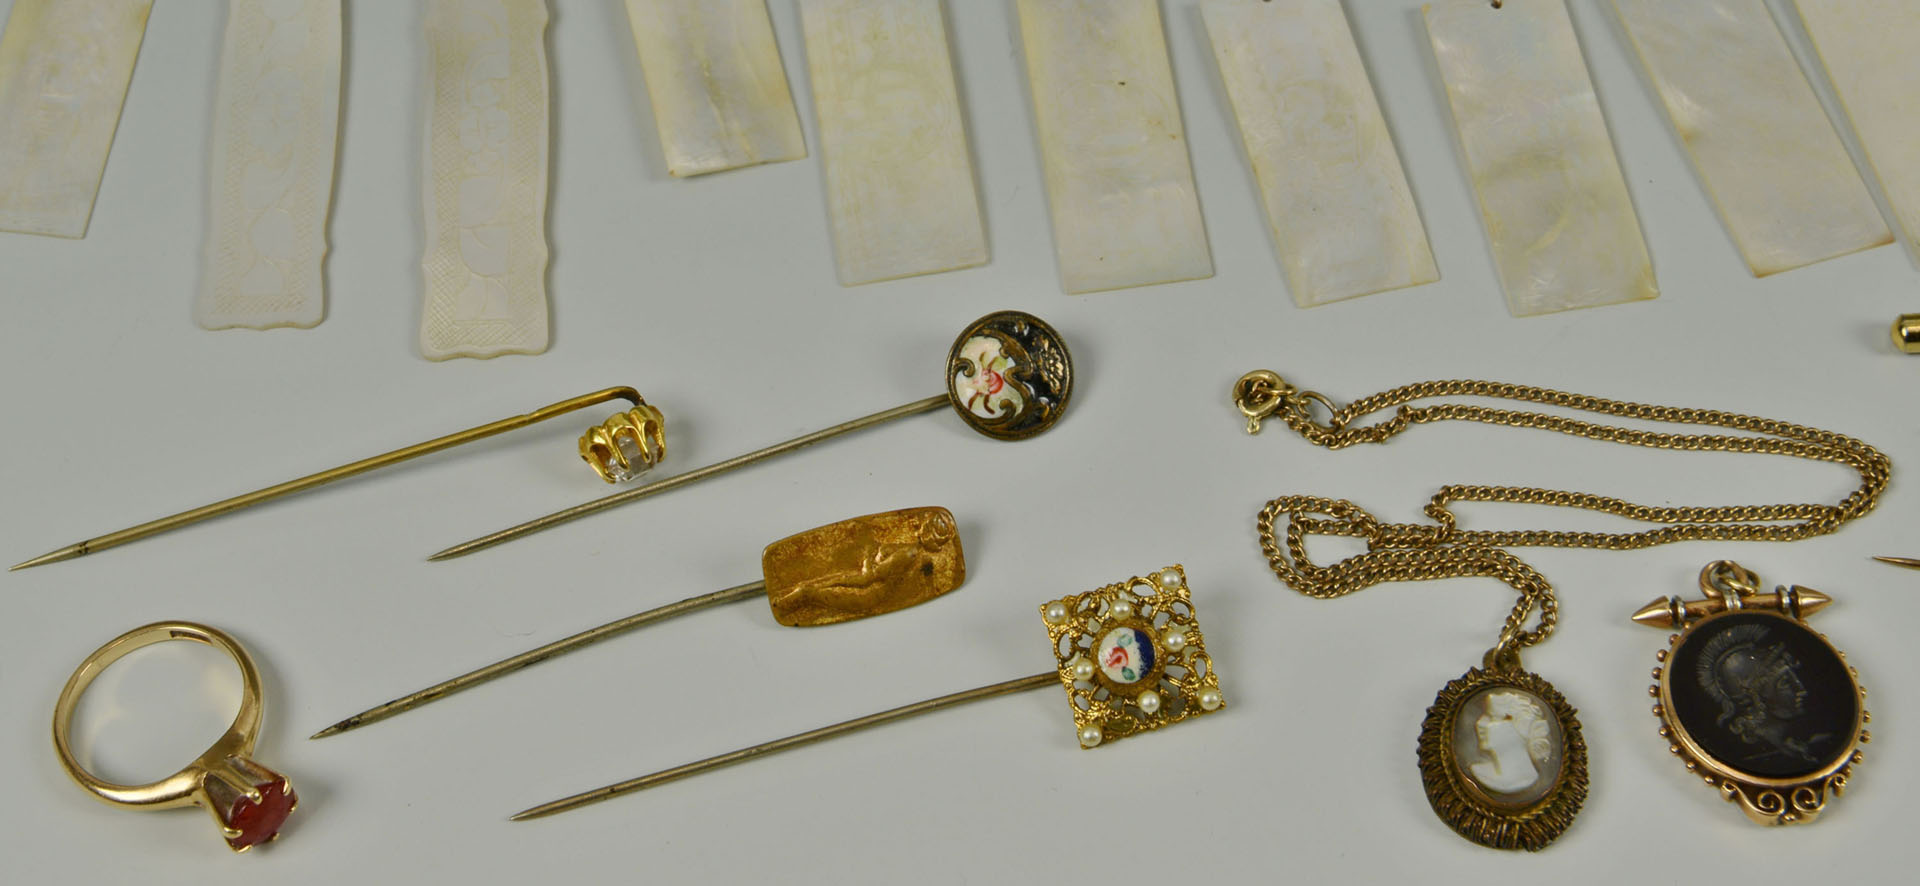 14k, 10k and Victorian jewelry